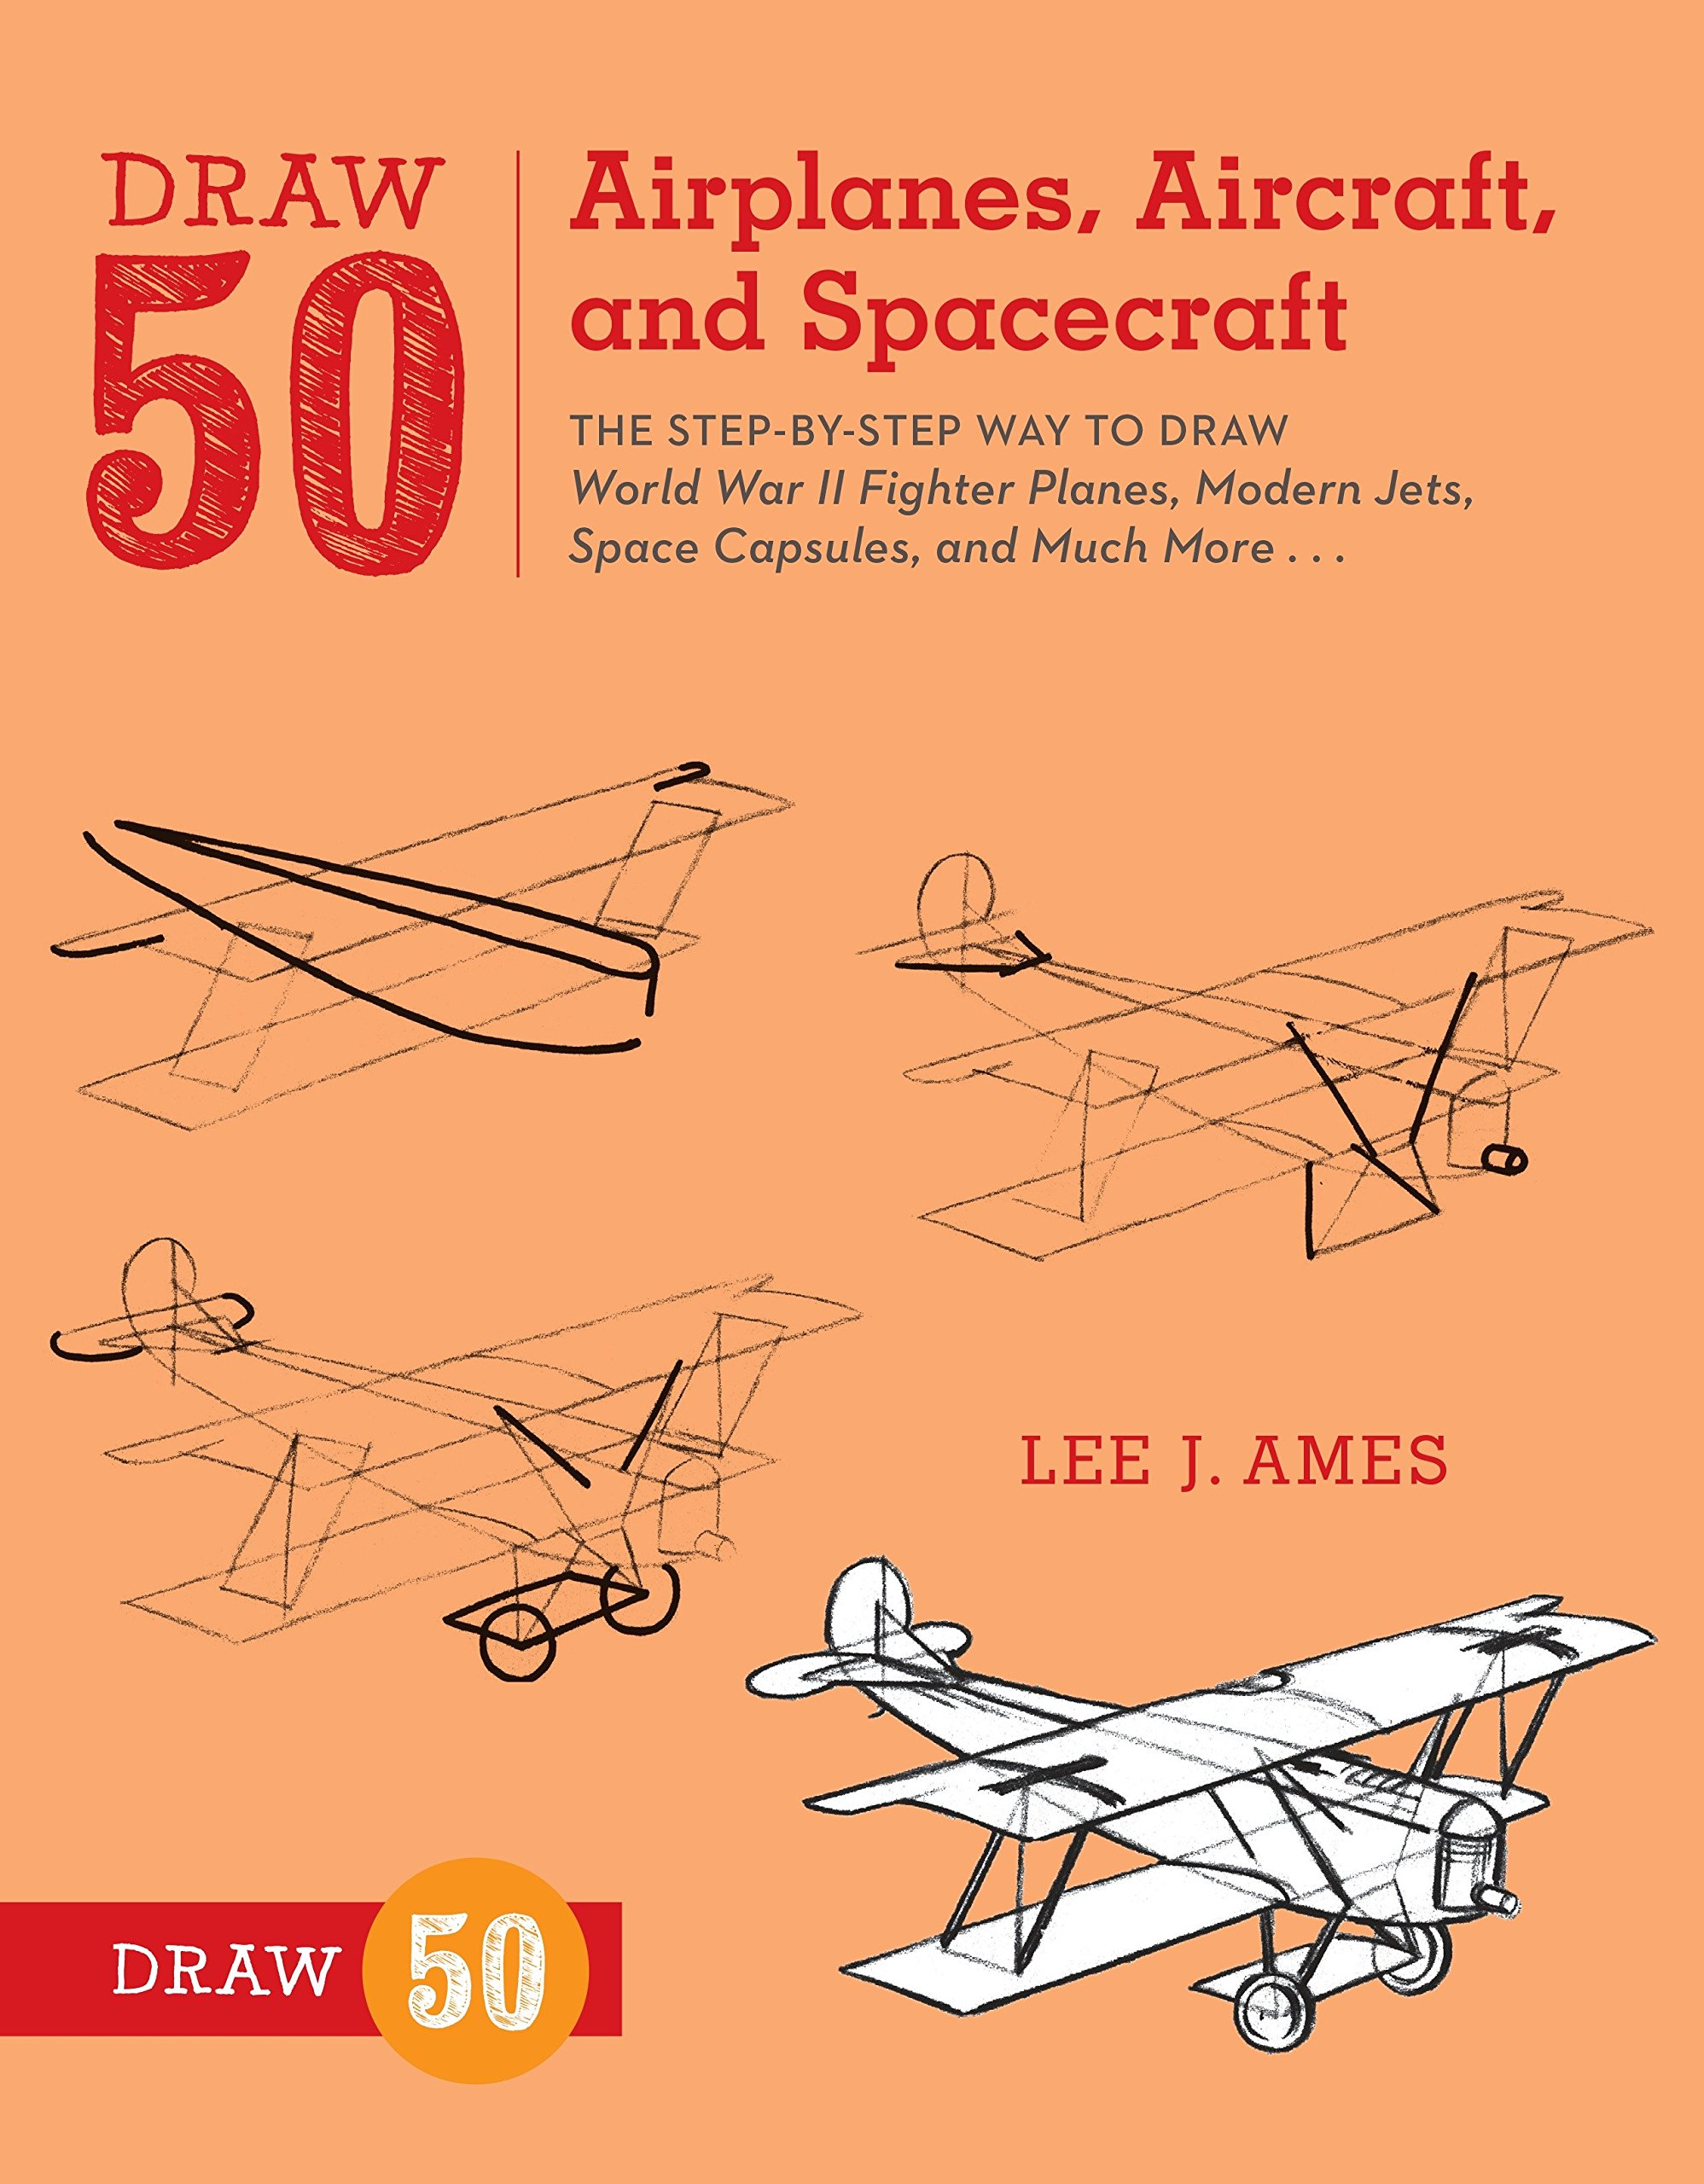 Draw 50 Airplanes, Aircraft, and Spacecraft: The Step-by-Step Way to Draw World War II Fighter Planes, Modern Jets…